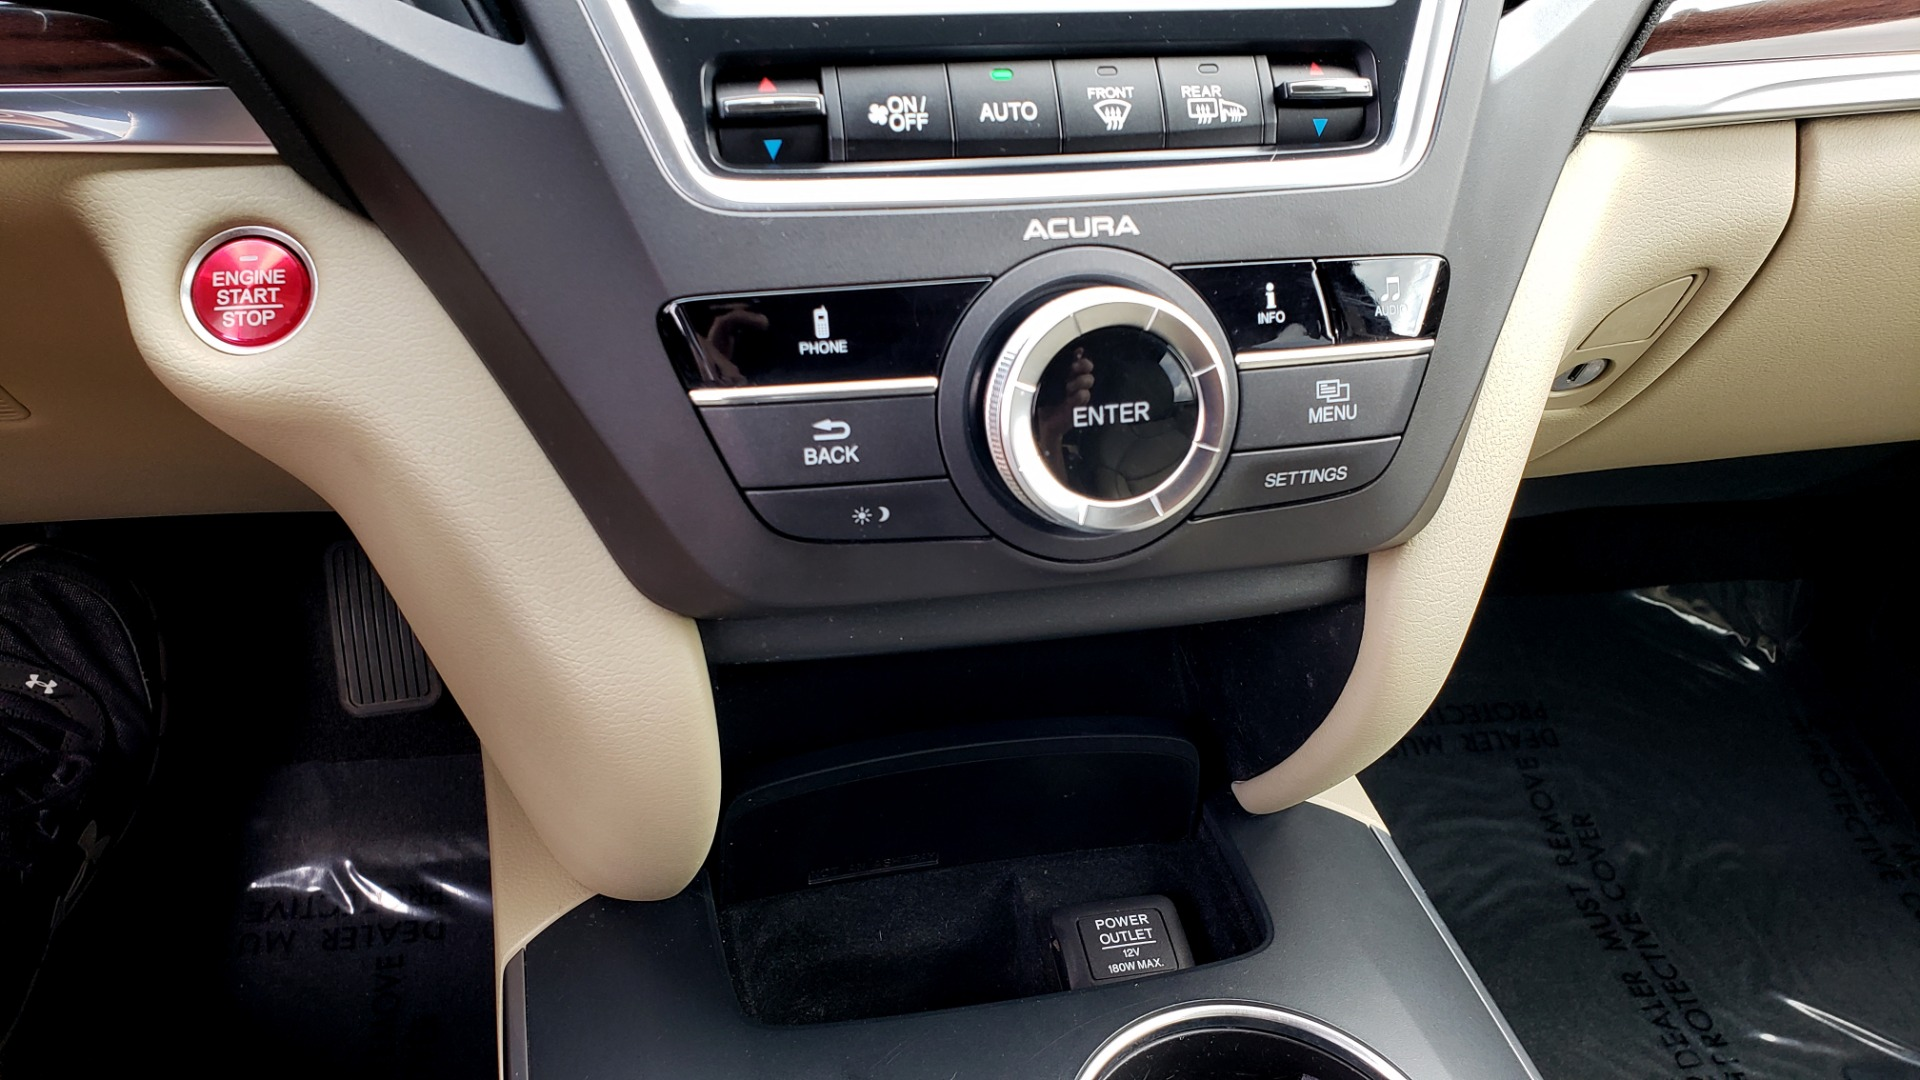 Used 2014 Acura MDX AWD / NAV / SUNROOF / 3-ROW / REARVIEW / PREMIUM SND for sale Sold at Formula Imports in Charlotte NC 28227 52